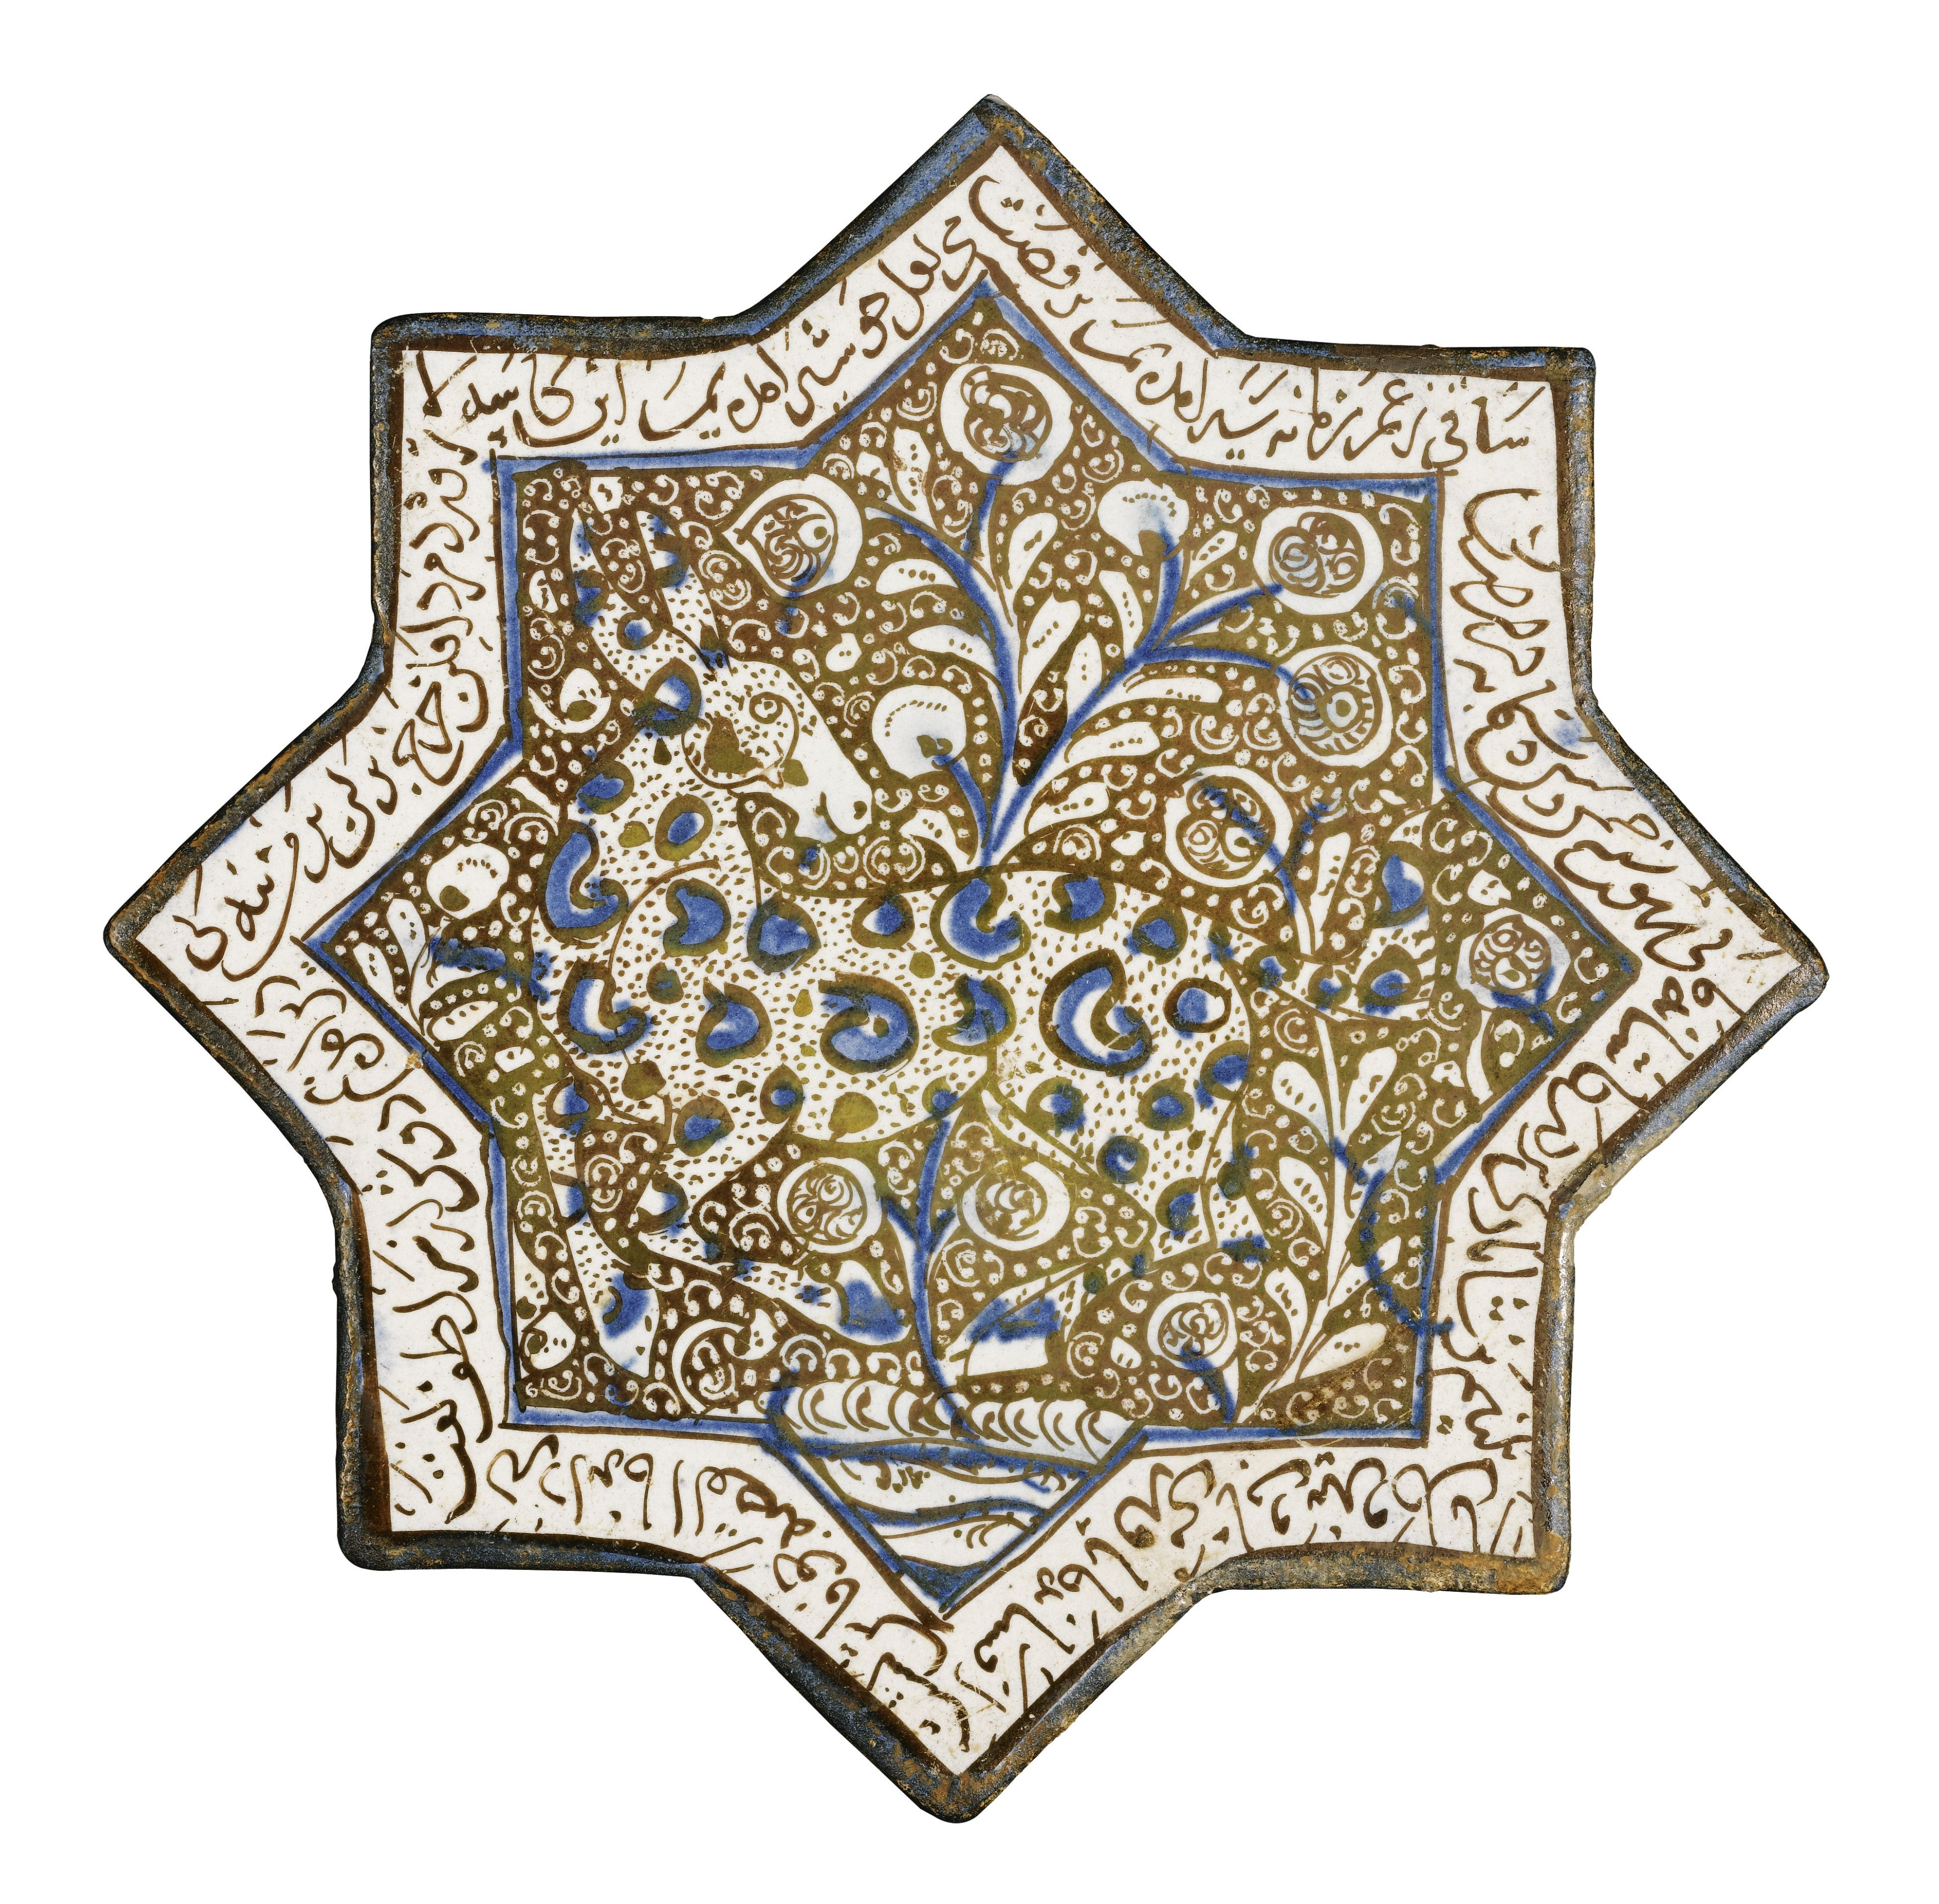 A fine ilkhanid lustre star tile kashan persia dated 665 ah a fine ilkhanid lustre star tile kashan persia dated 665 ah 1266 dailygadgetfo Choice Image